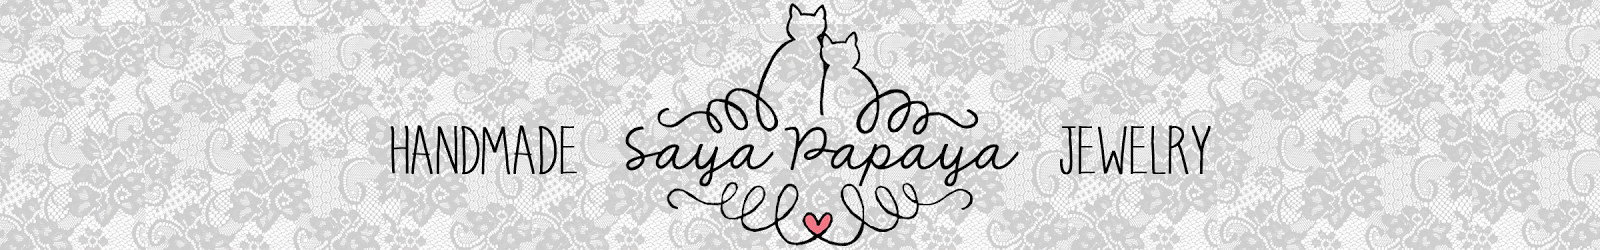 Saya Papaya Handmade Jewelry